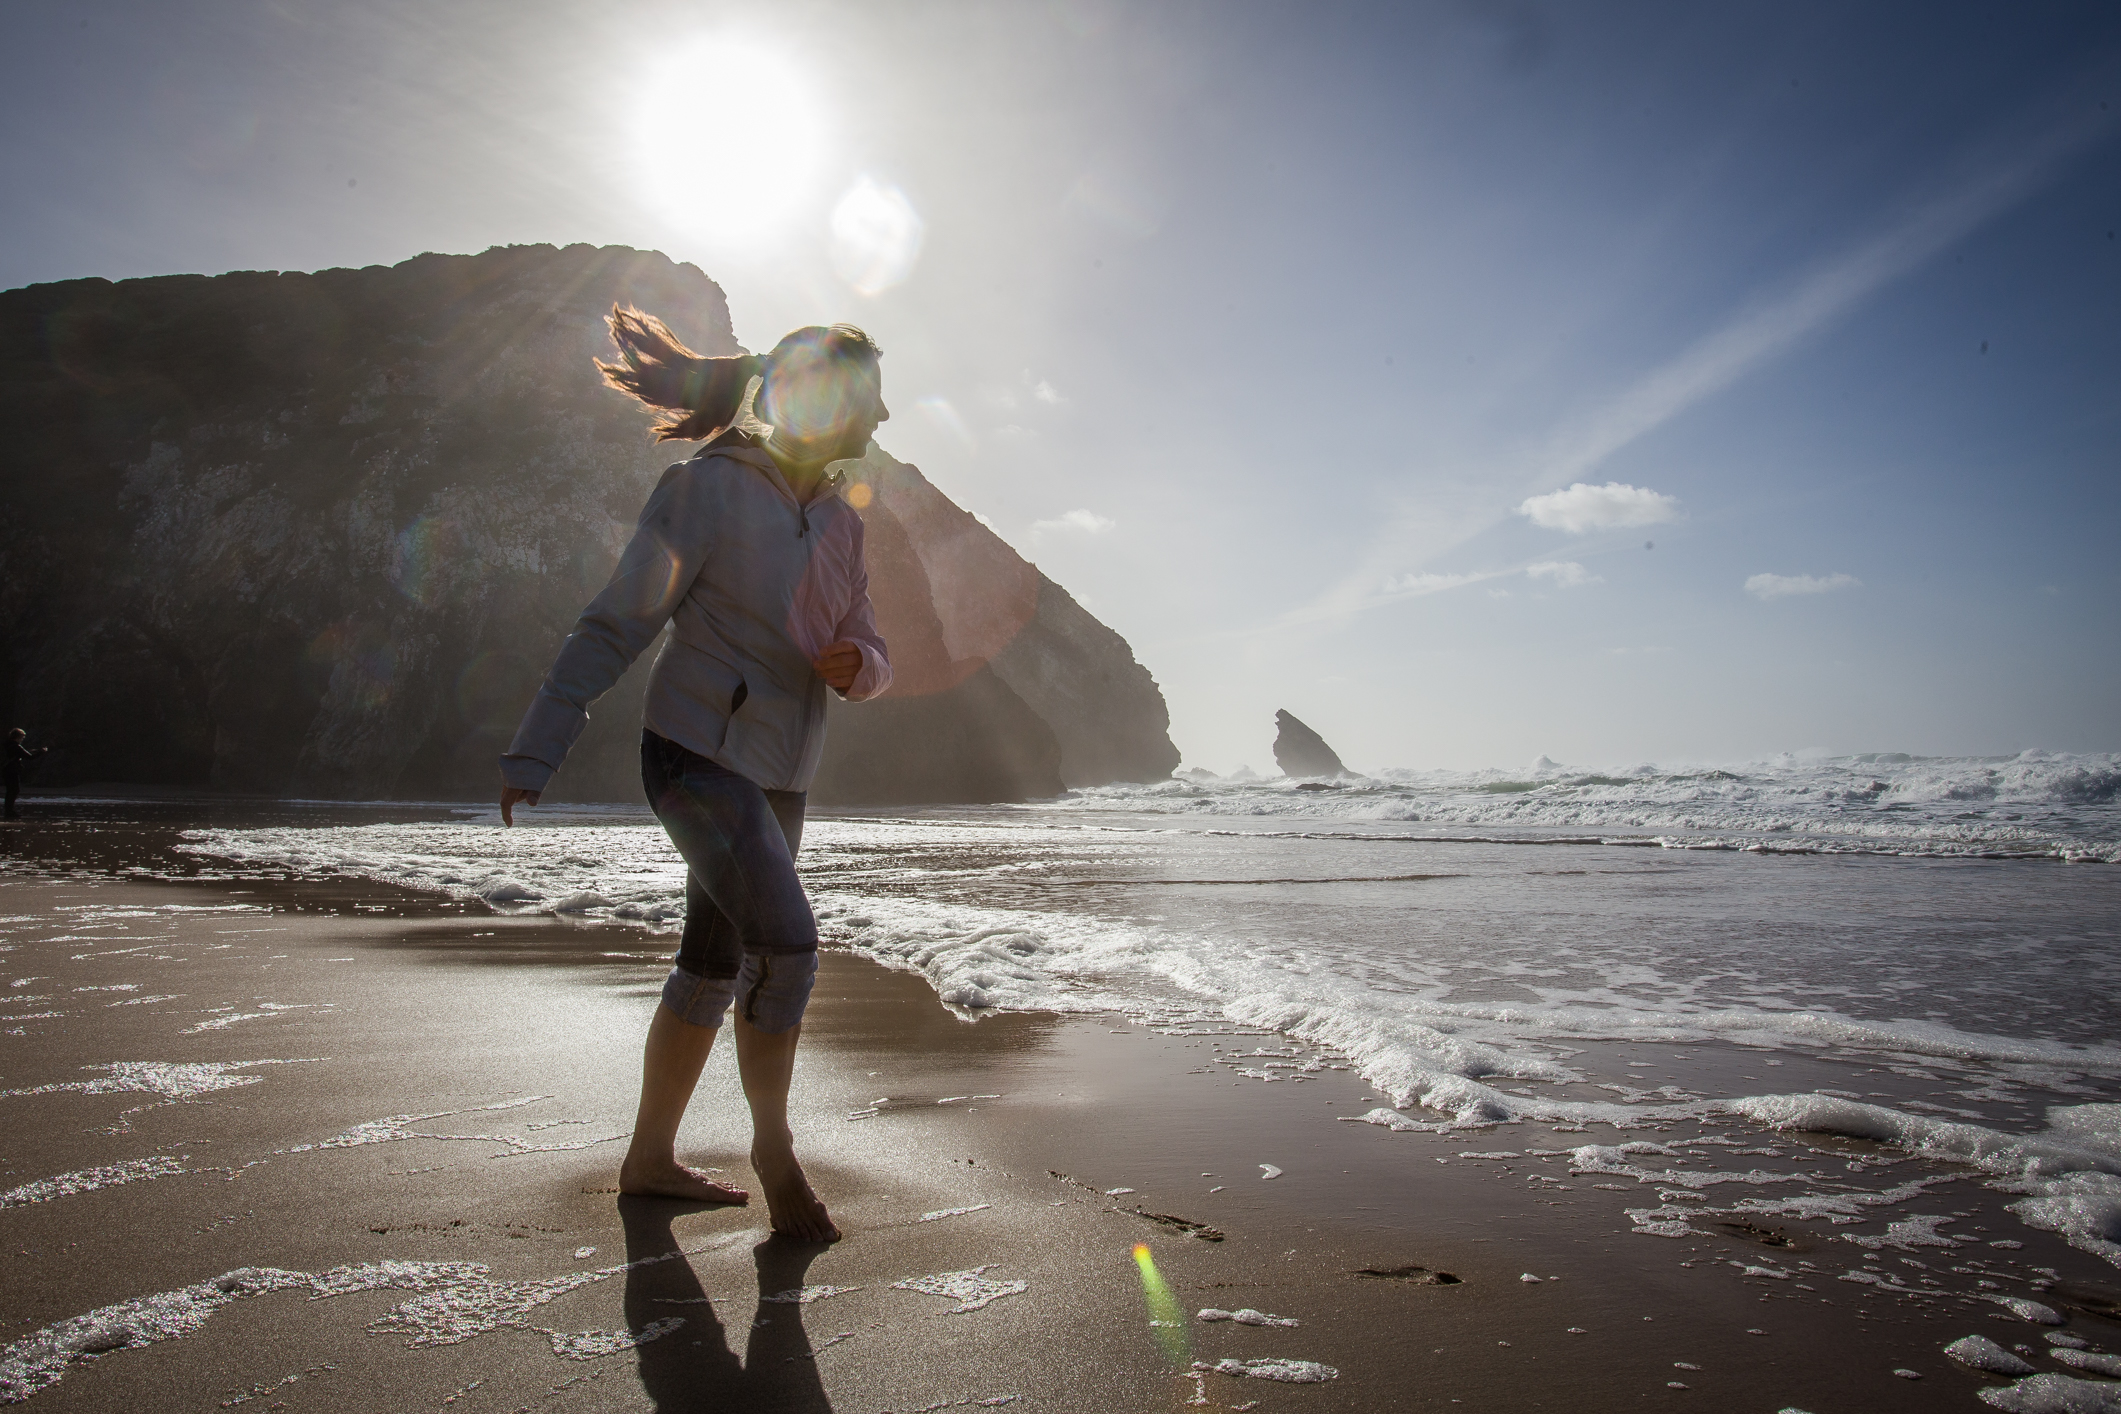 Barefoot in winter on the coast of Portugal.